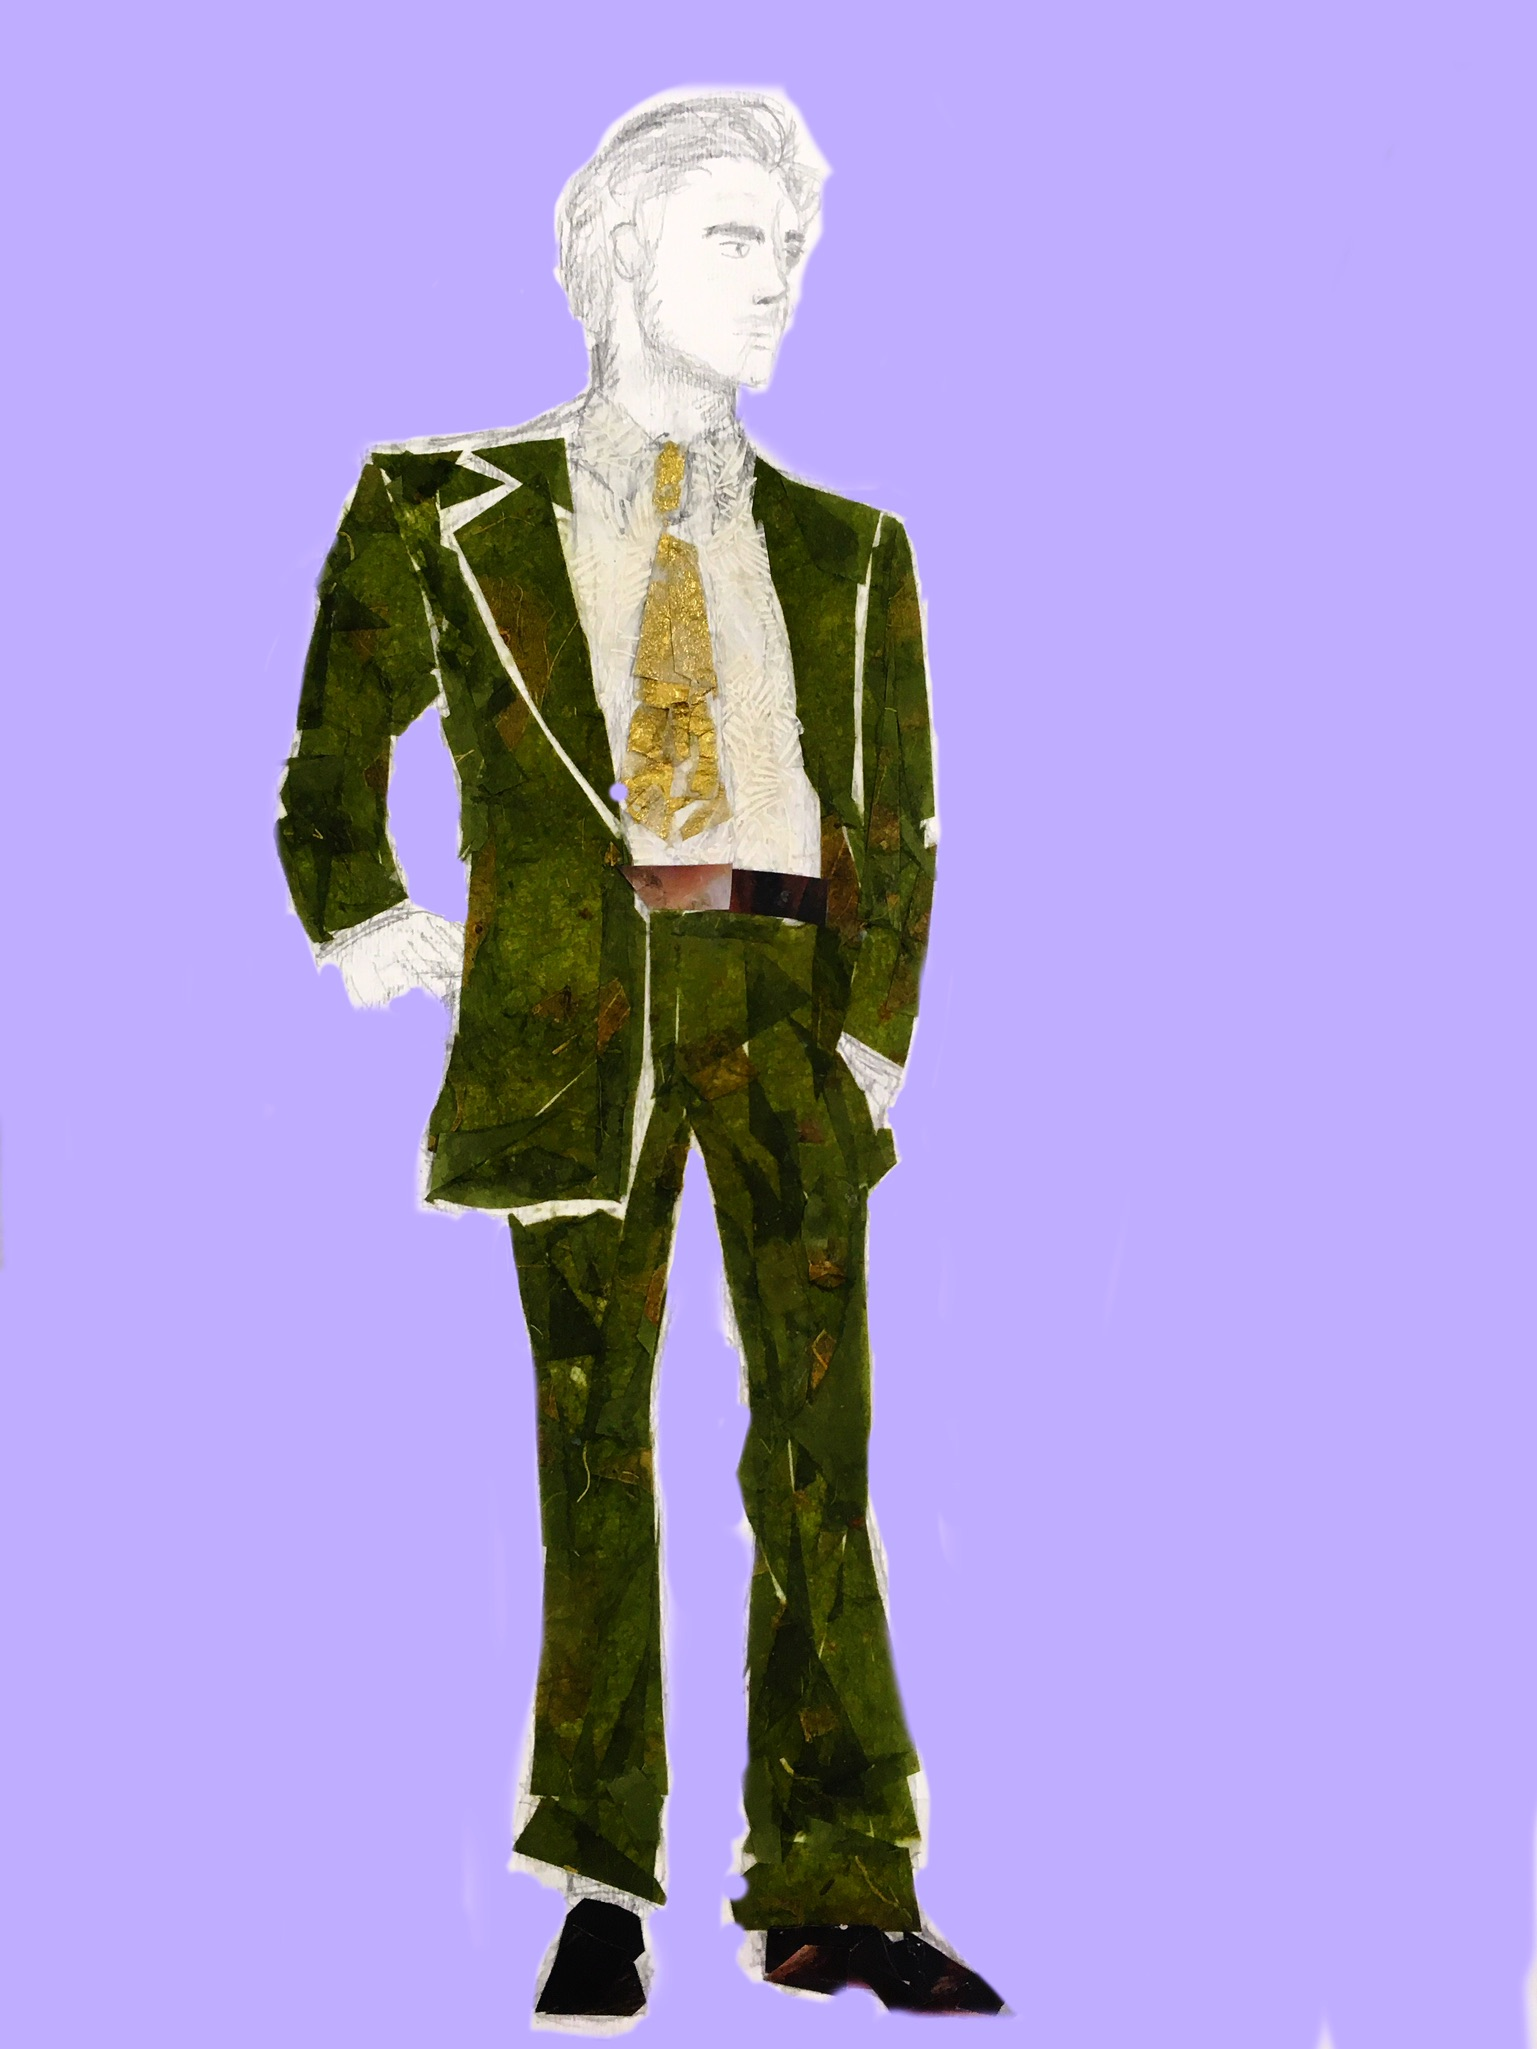 Collage Work of 1970s Suit